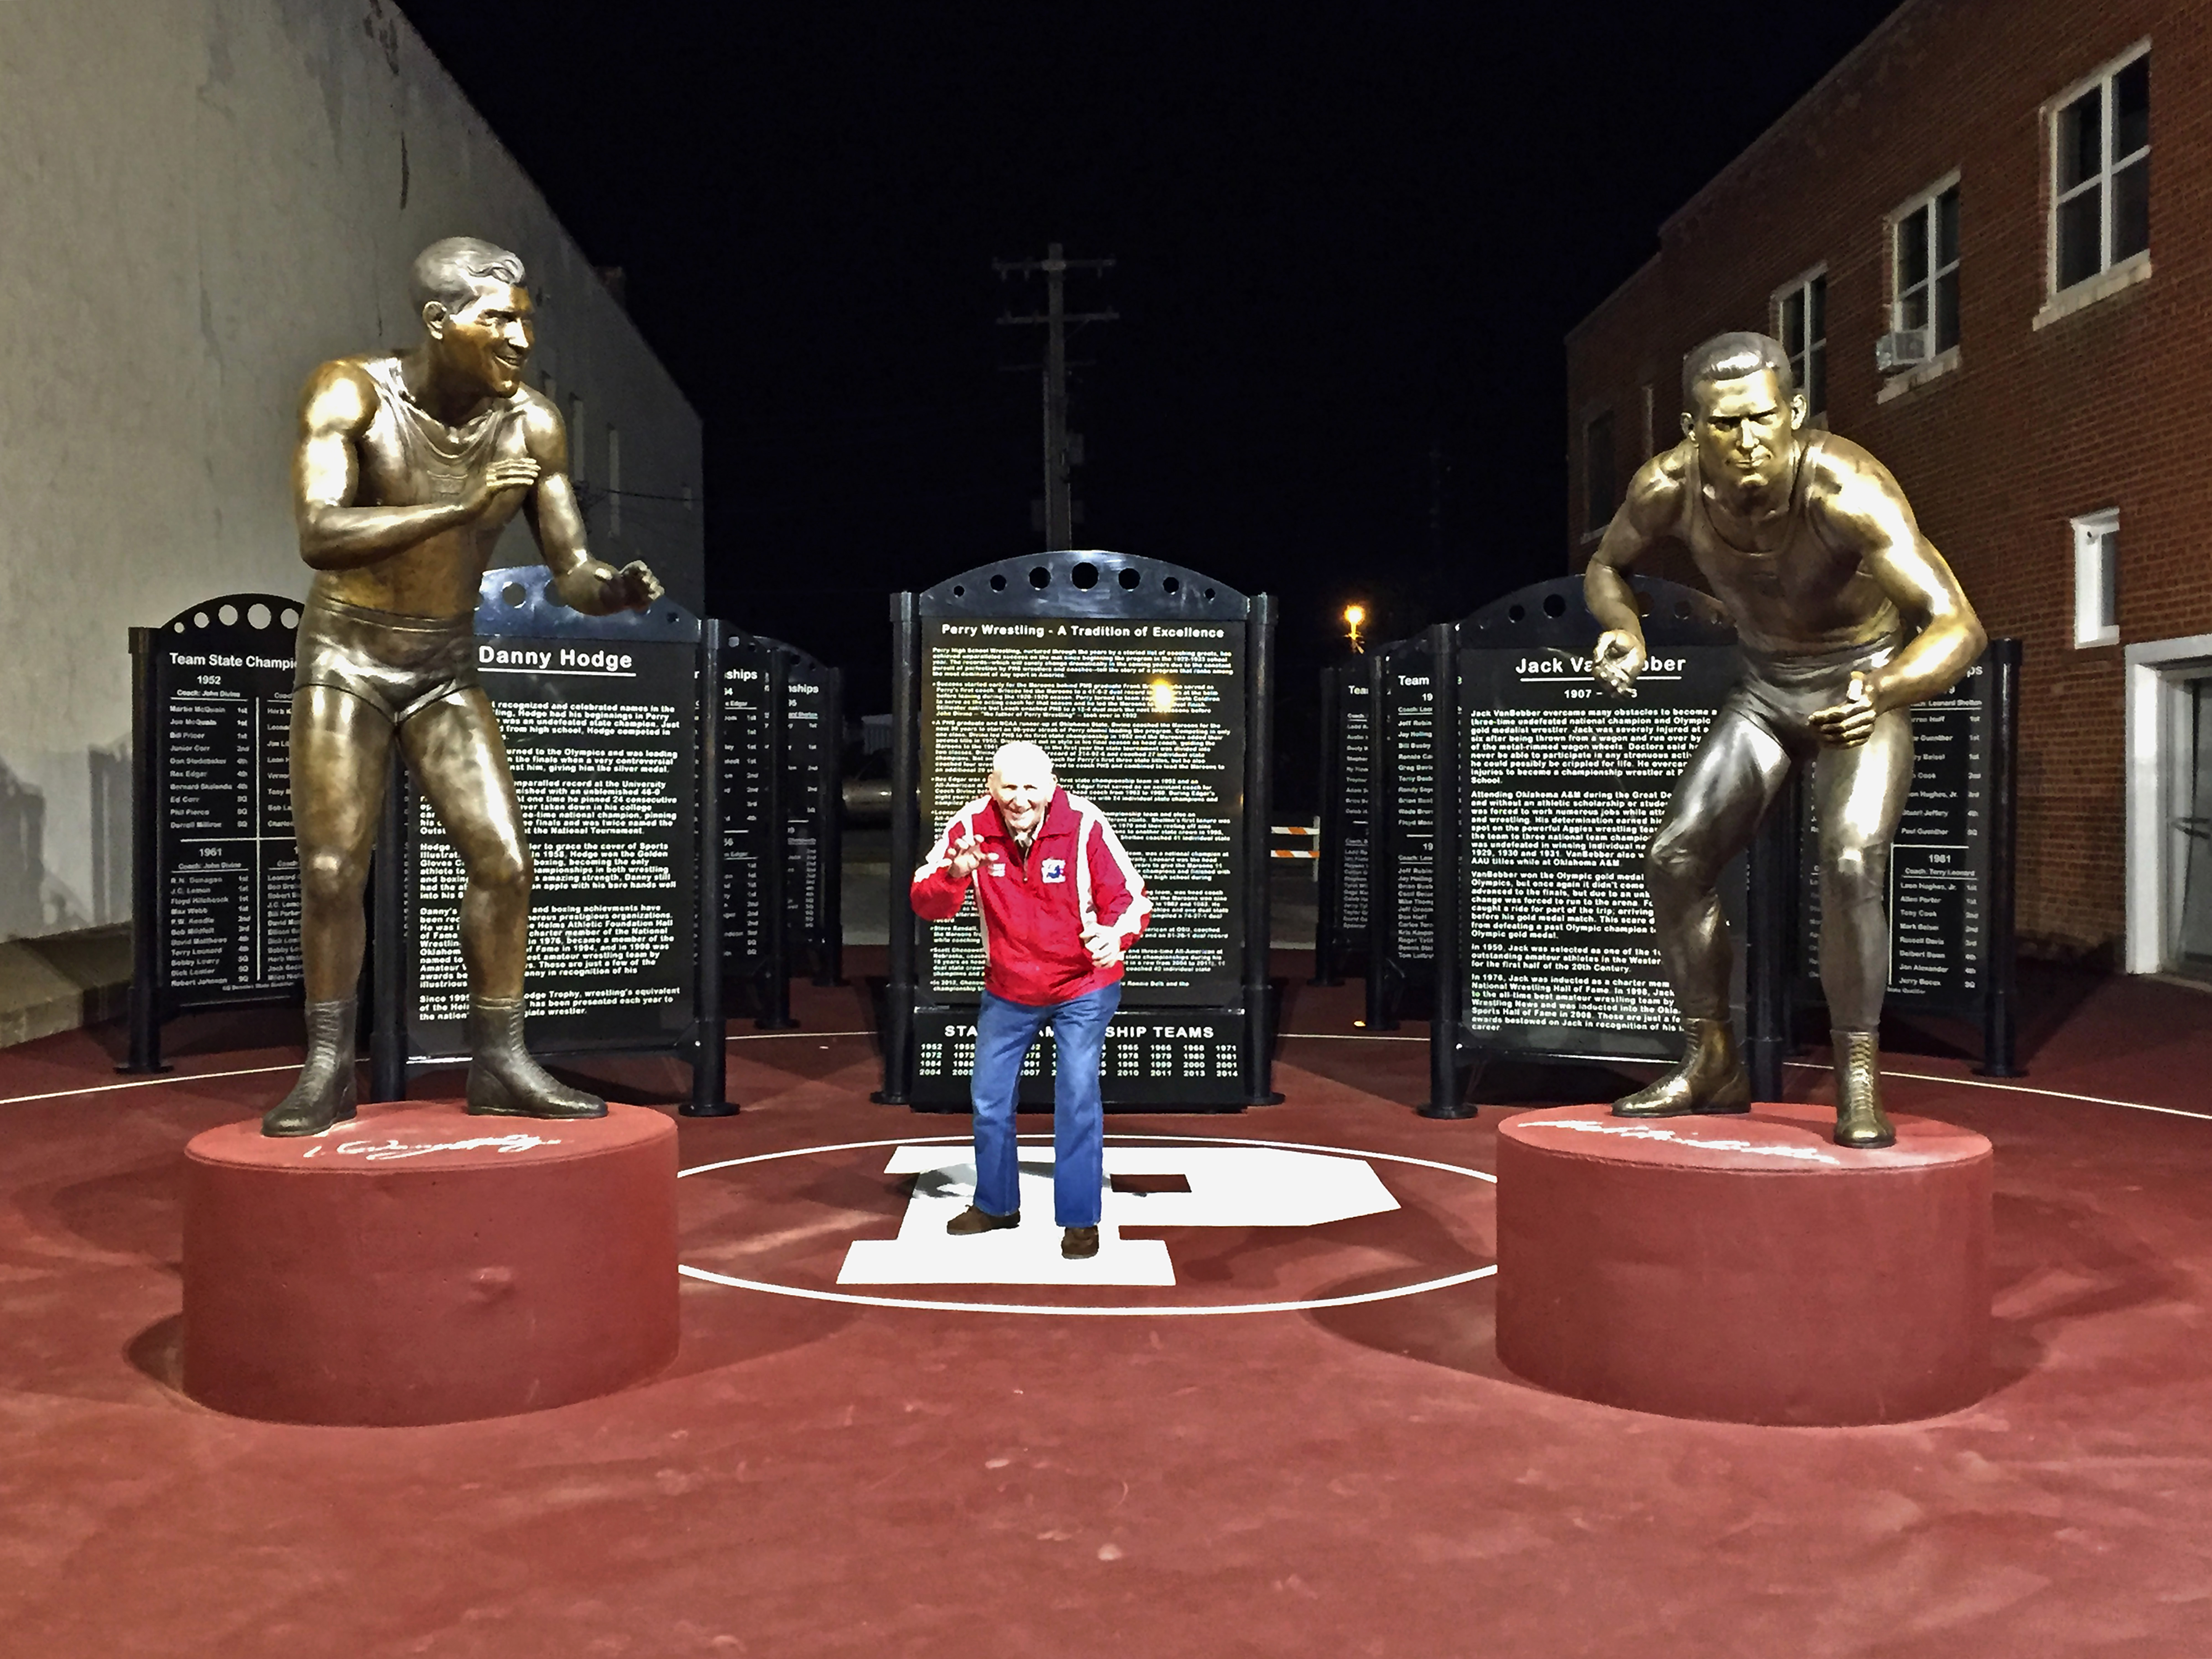 Perry Wrestling Monument with Danny Hodge